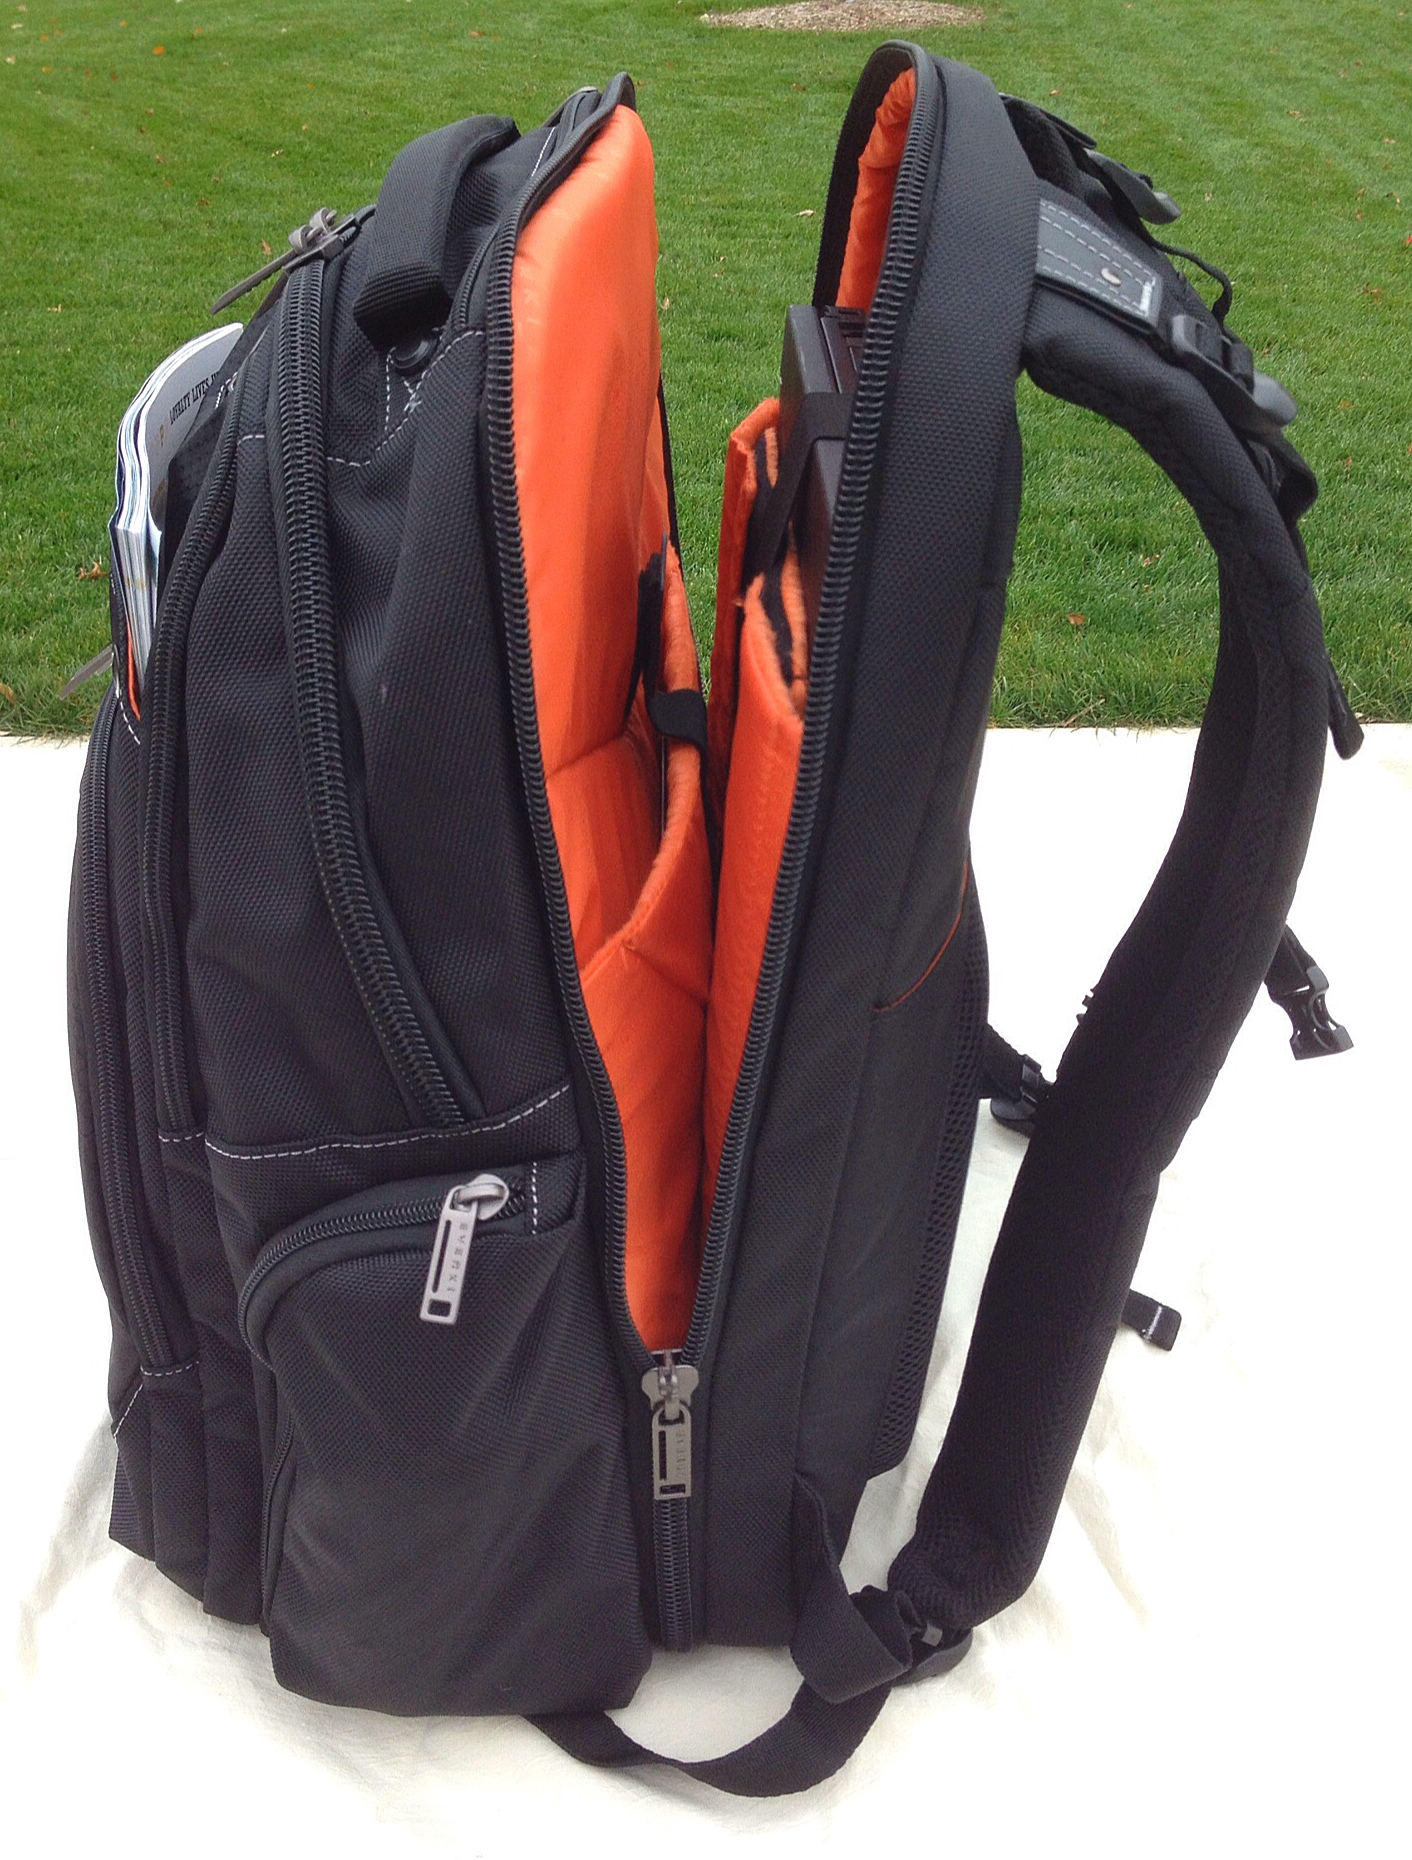 Backpacks With Laptop Compartments KwGe7NBi